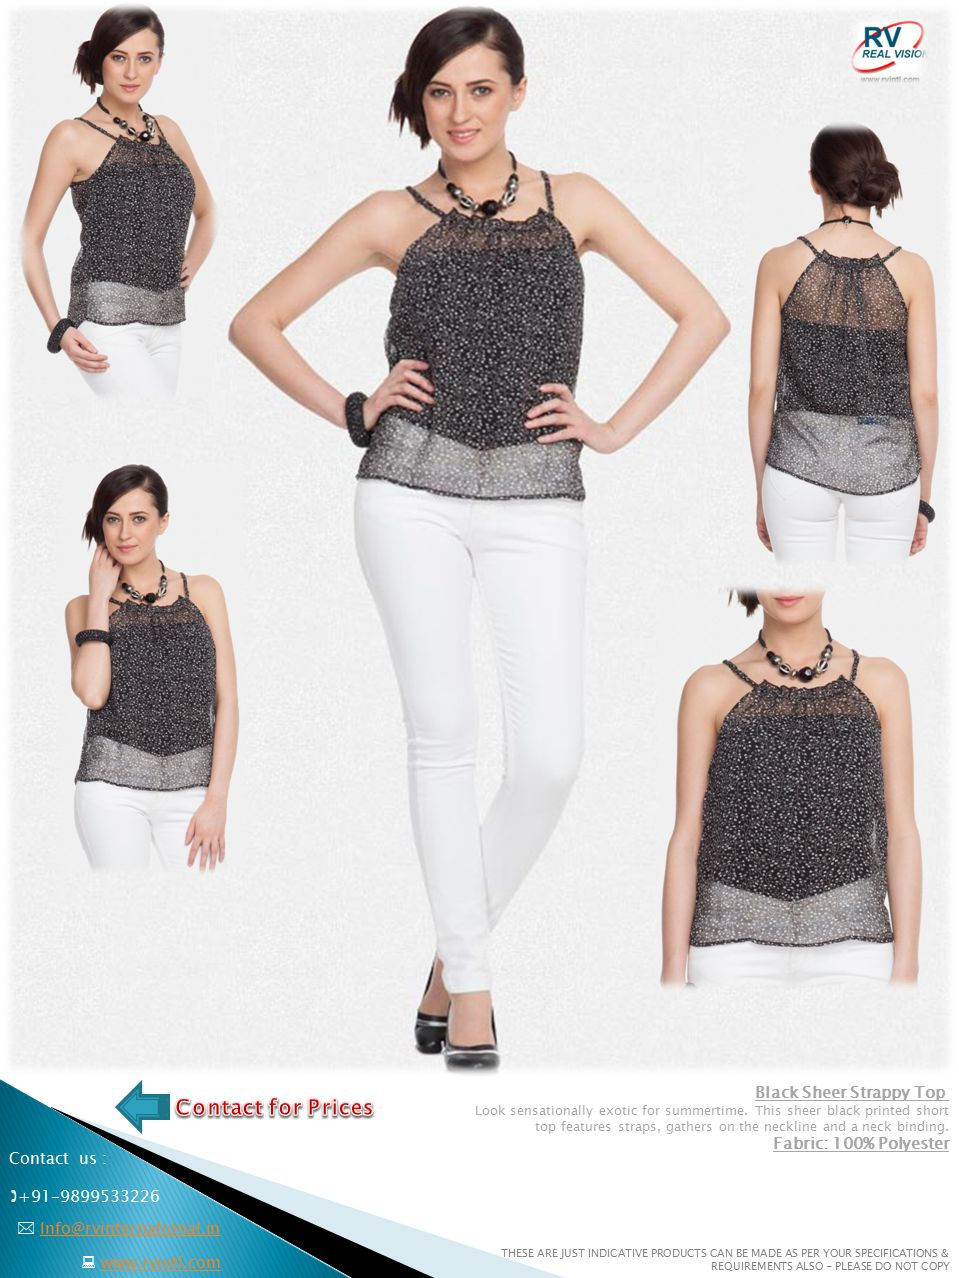  +91-9899533226  www.rvintl.comwww.rvintl.com  Info@rvinternational.inInfo@rvinternational.in Contact us : THESE ARE JUST INDICATIVE PRODUCTS CAN BE MADE AS PER YOUR SPECIFICATIONS & REQUIREMENTS ALSO - PLEASE DO NOT COPY Black Printed Sleeveless Sheer Top This black sleeveless printed top features a a contrast print on the hemline, a V neck and an open placket.